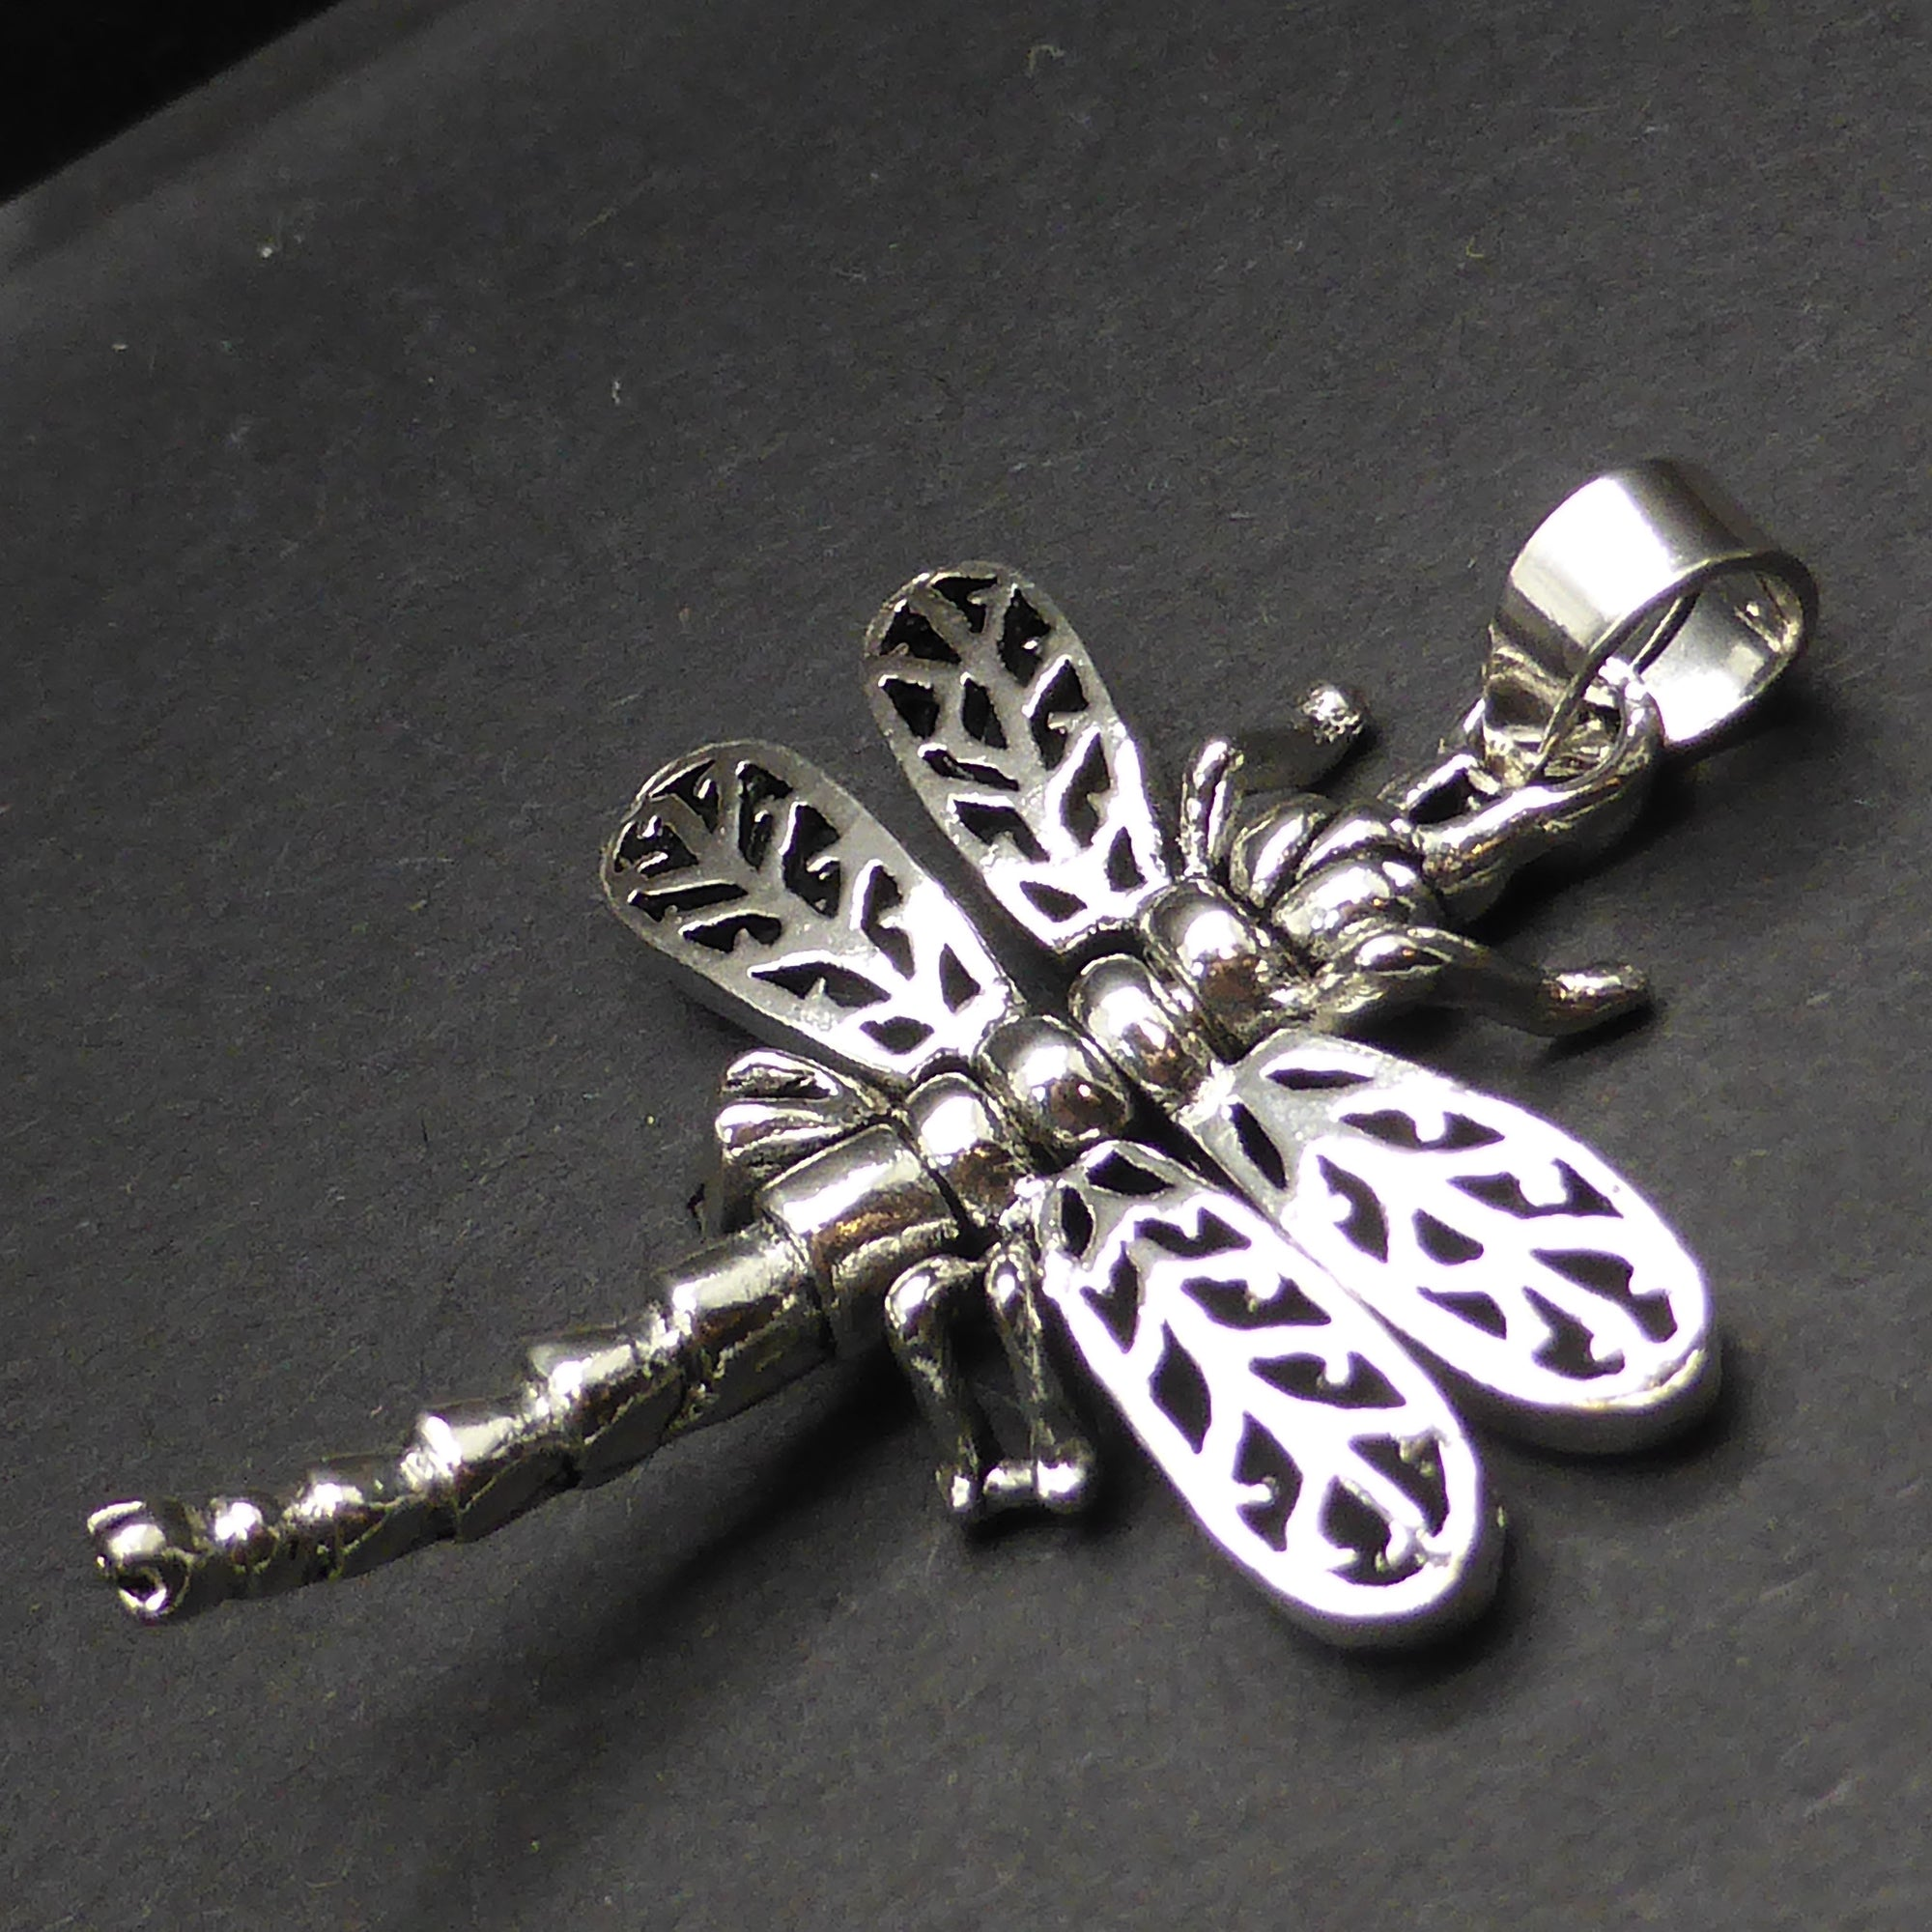 stl model dragonfly print pendant models pendants cgtrader jewelry